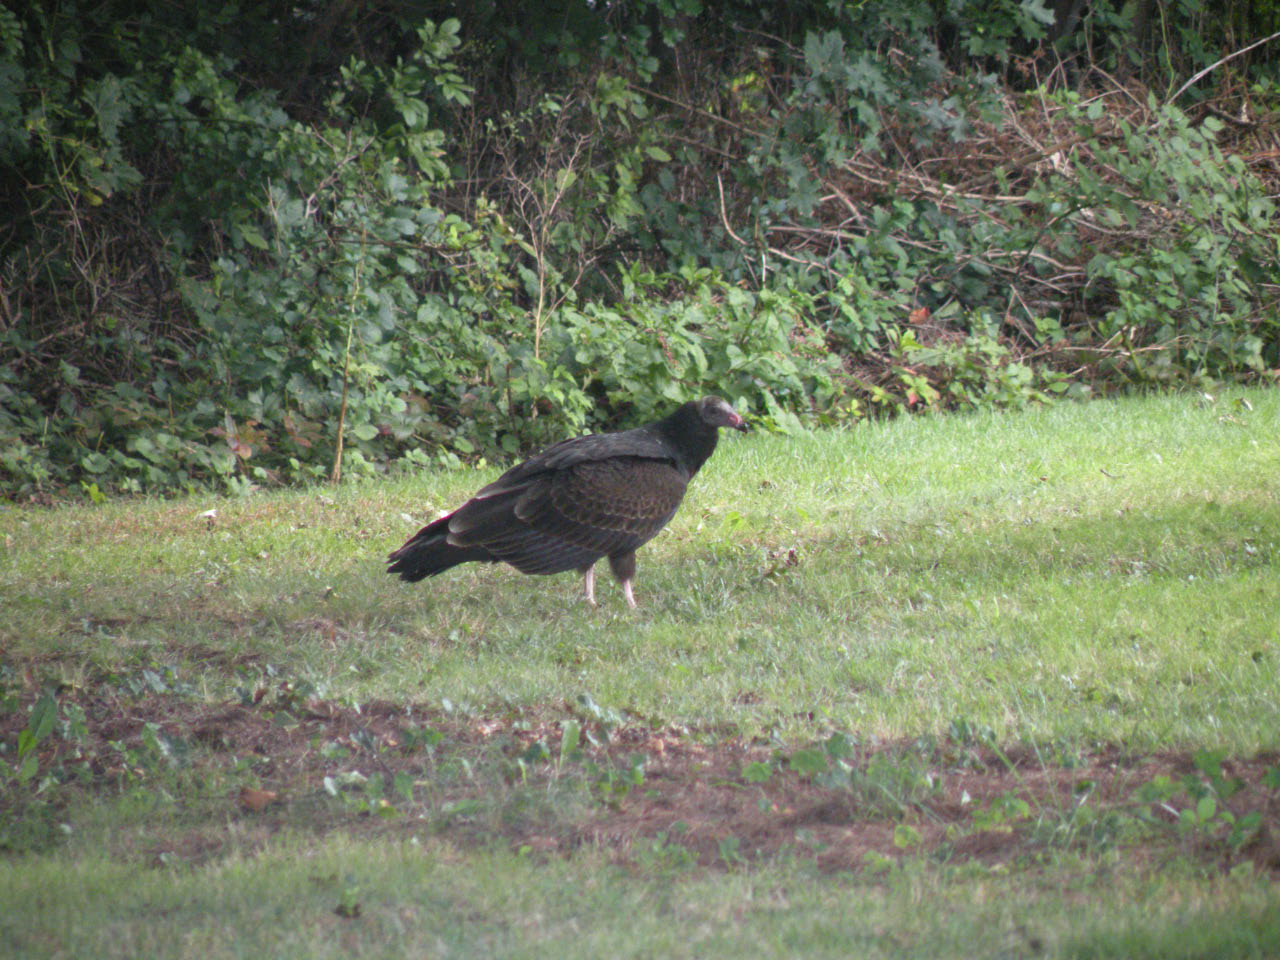 turkey_vulture-09-16-2009-3